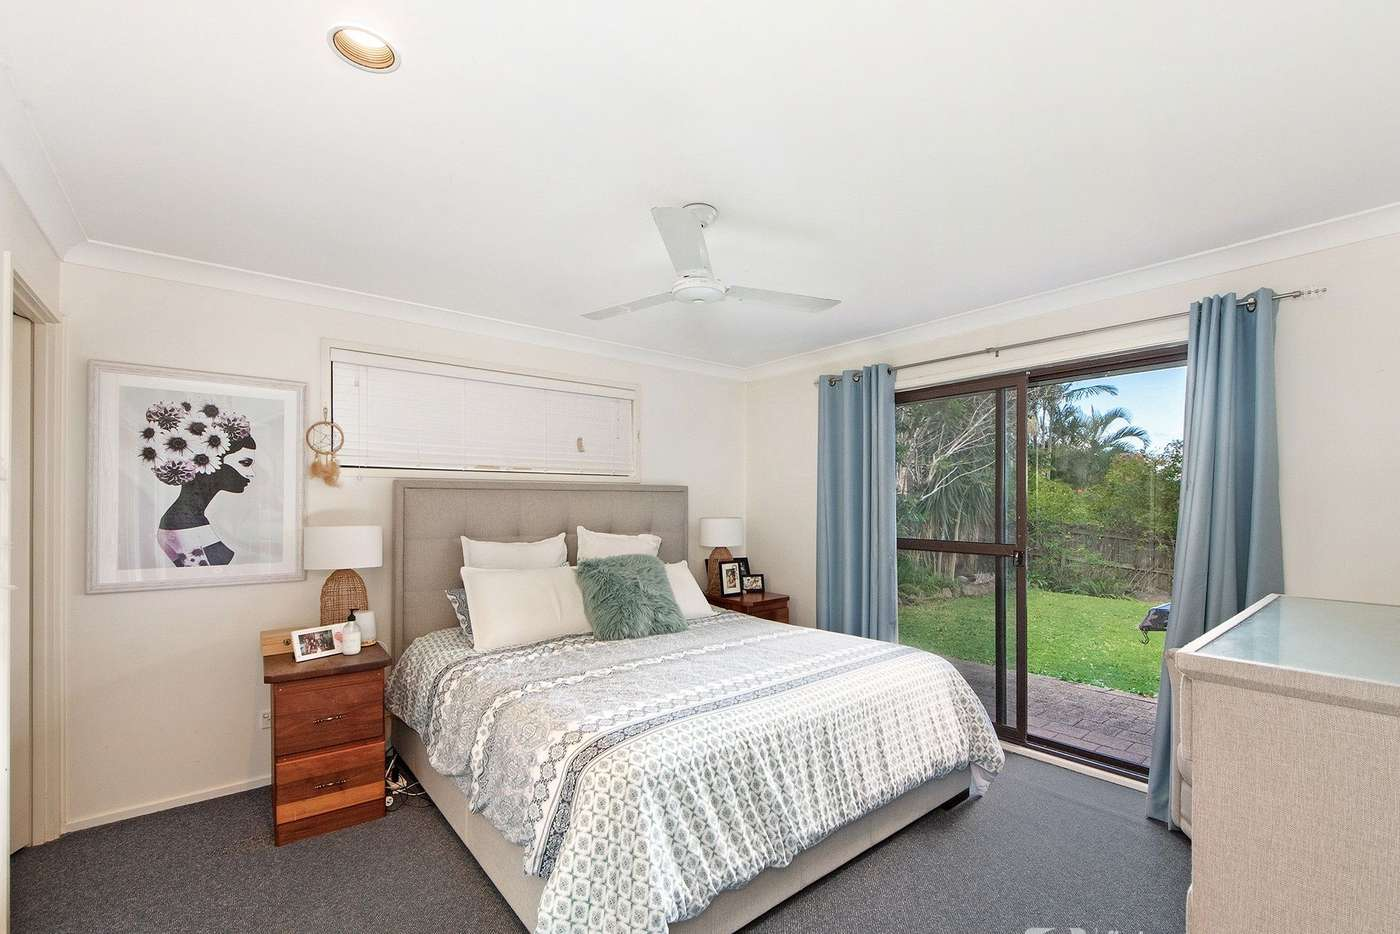 Sixth view of Homely house listing, 13 Pinehurst Place, Robina QLD 4226